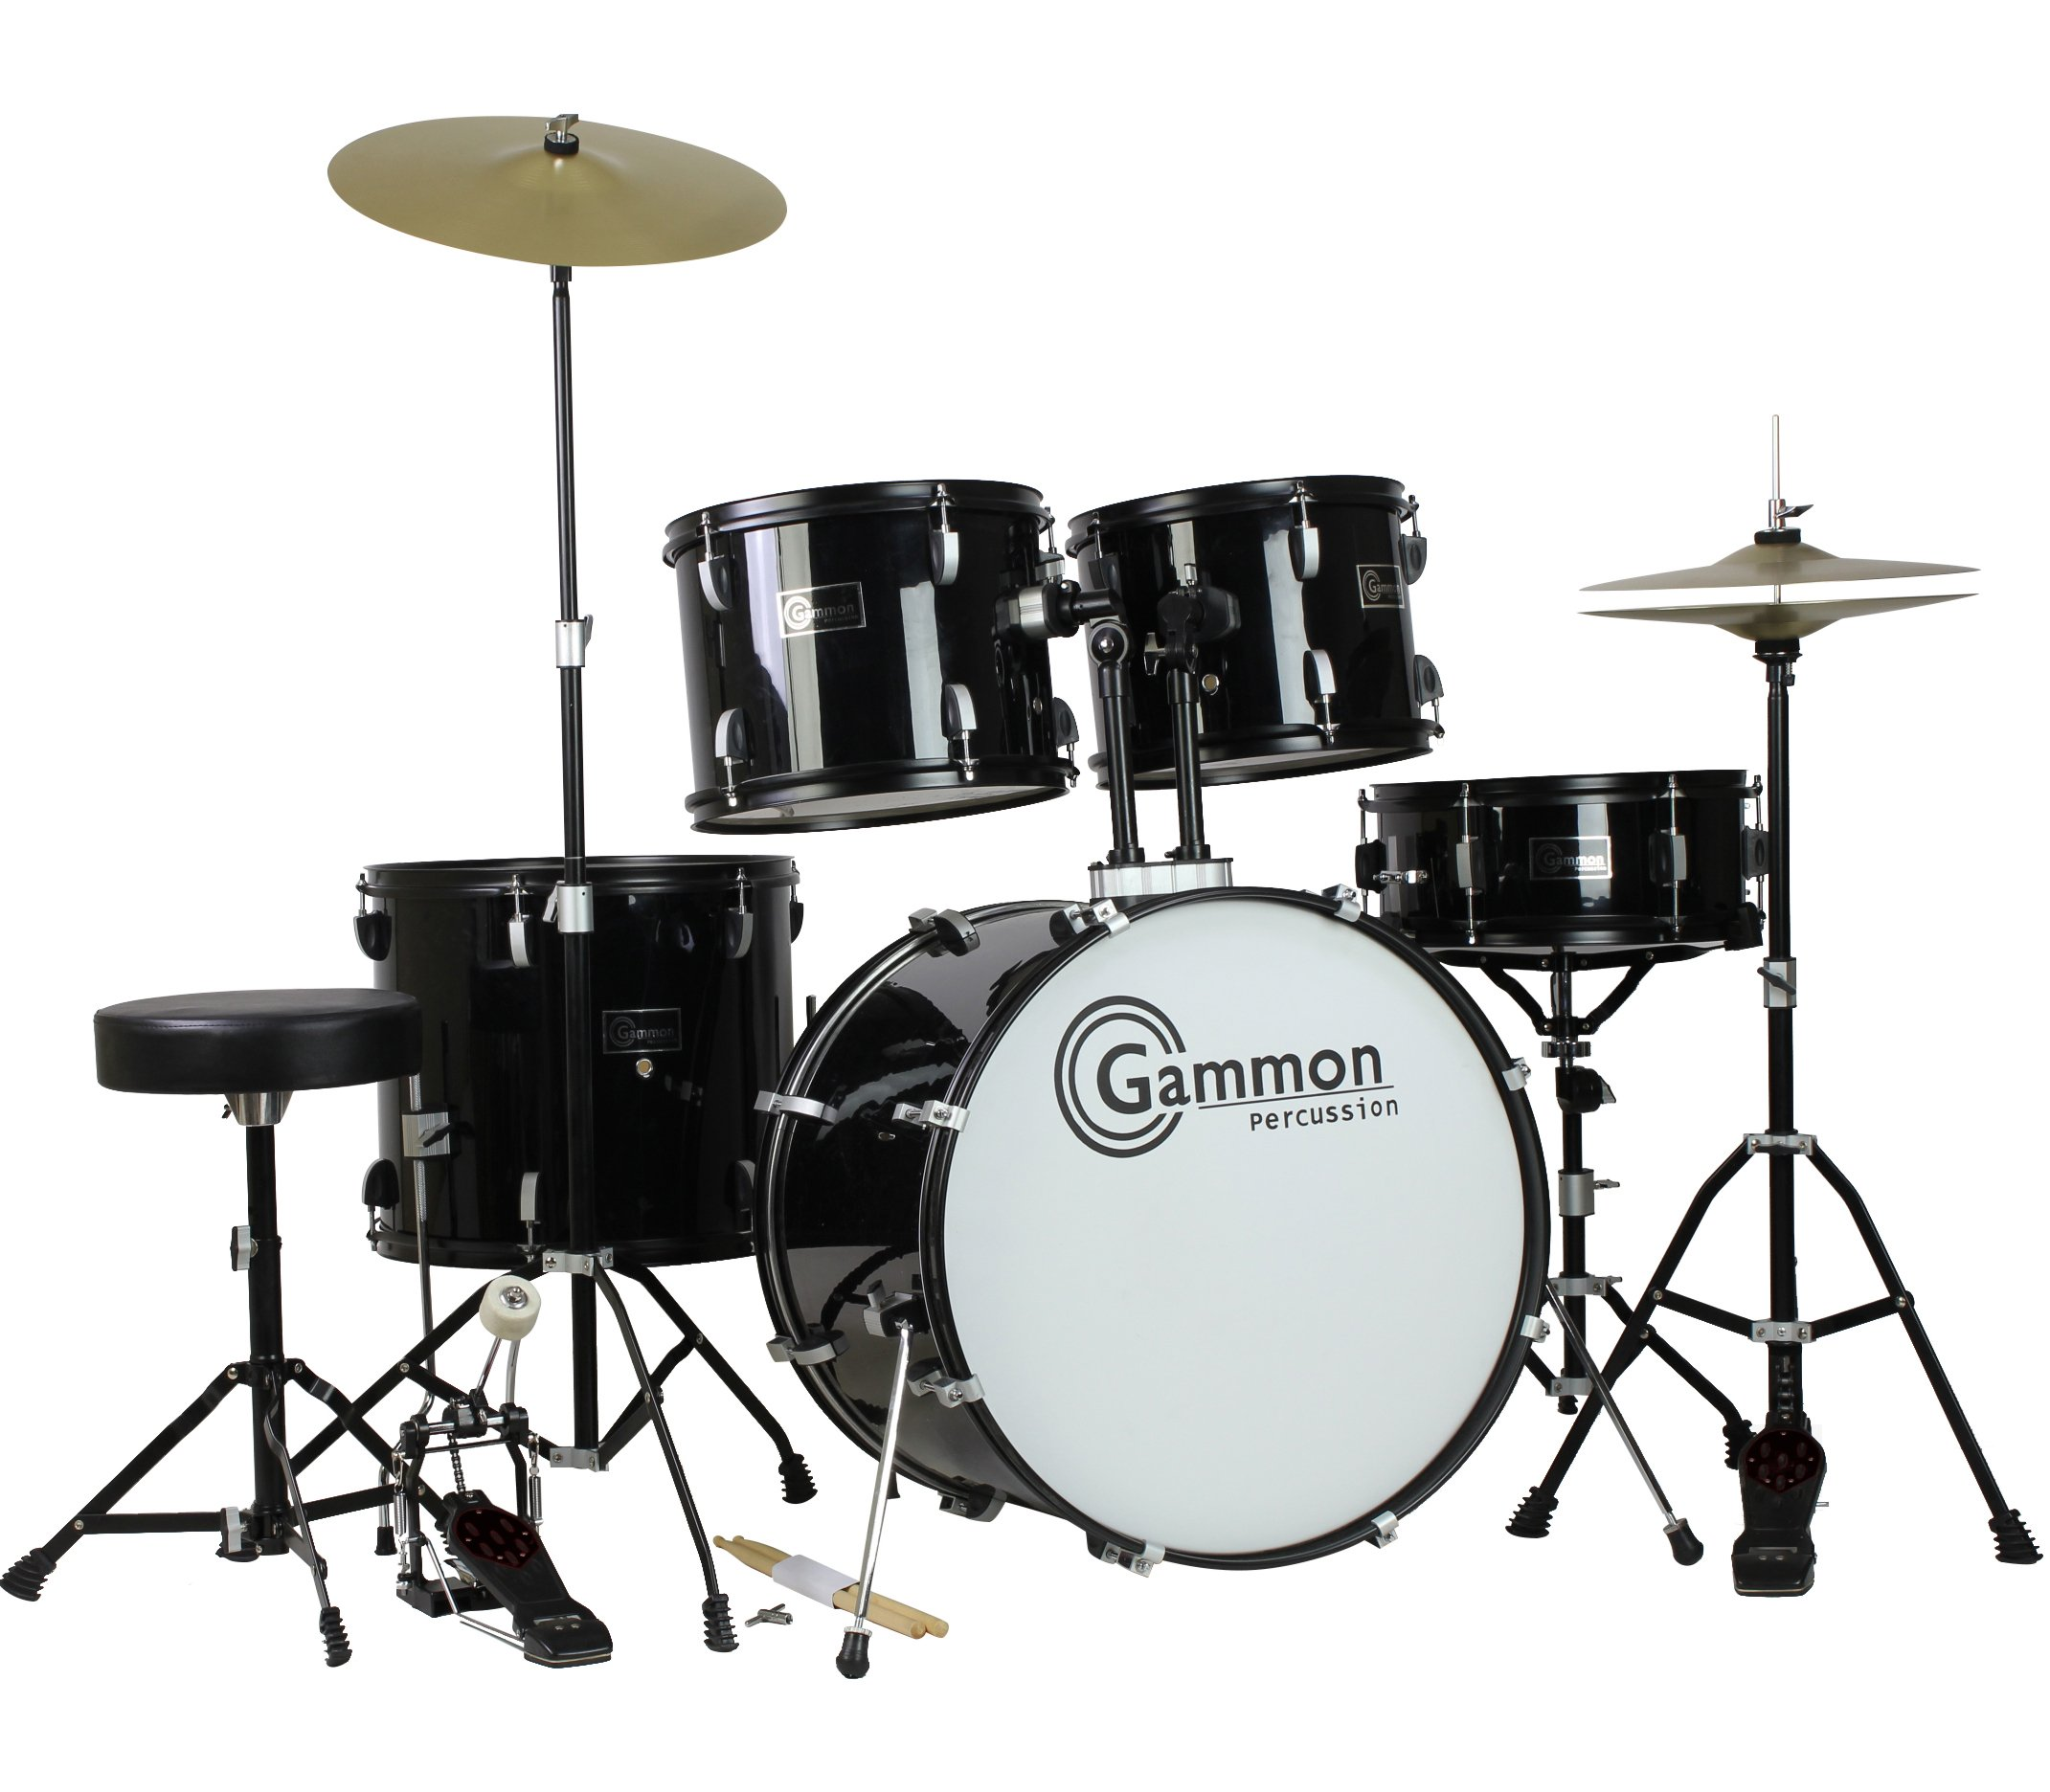 Gammon Percussion Complete Cymbals Stands